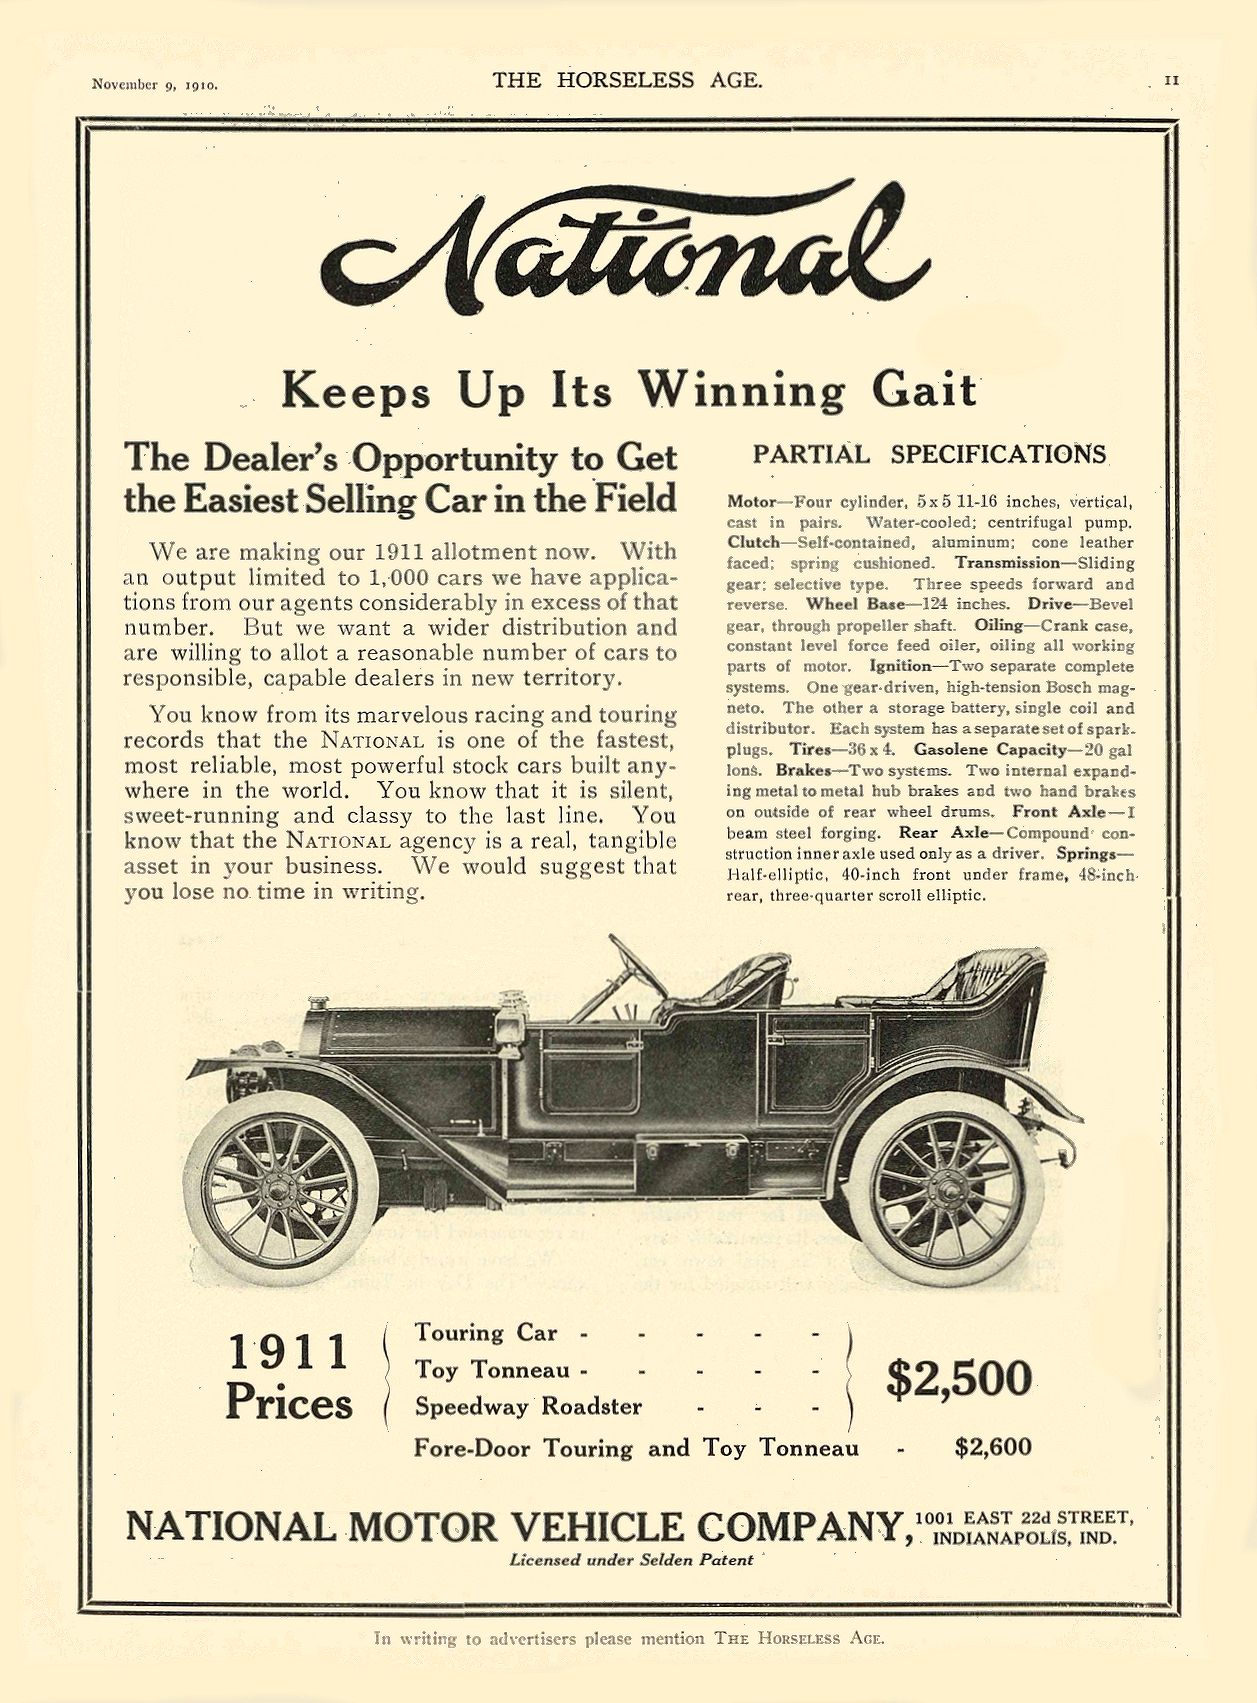 1911 11 9 NATIONAL National Keeps Up Its Winning Gait NATIONAL MOTOR VEHICLE COMPANY Indianapolis, IND THE HORSELESS AGE November 9, 1910 8.5″x11.75″ page 11